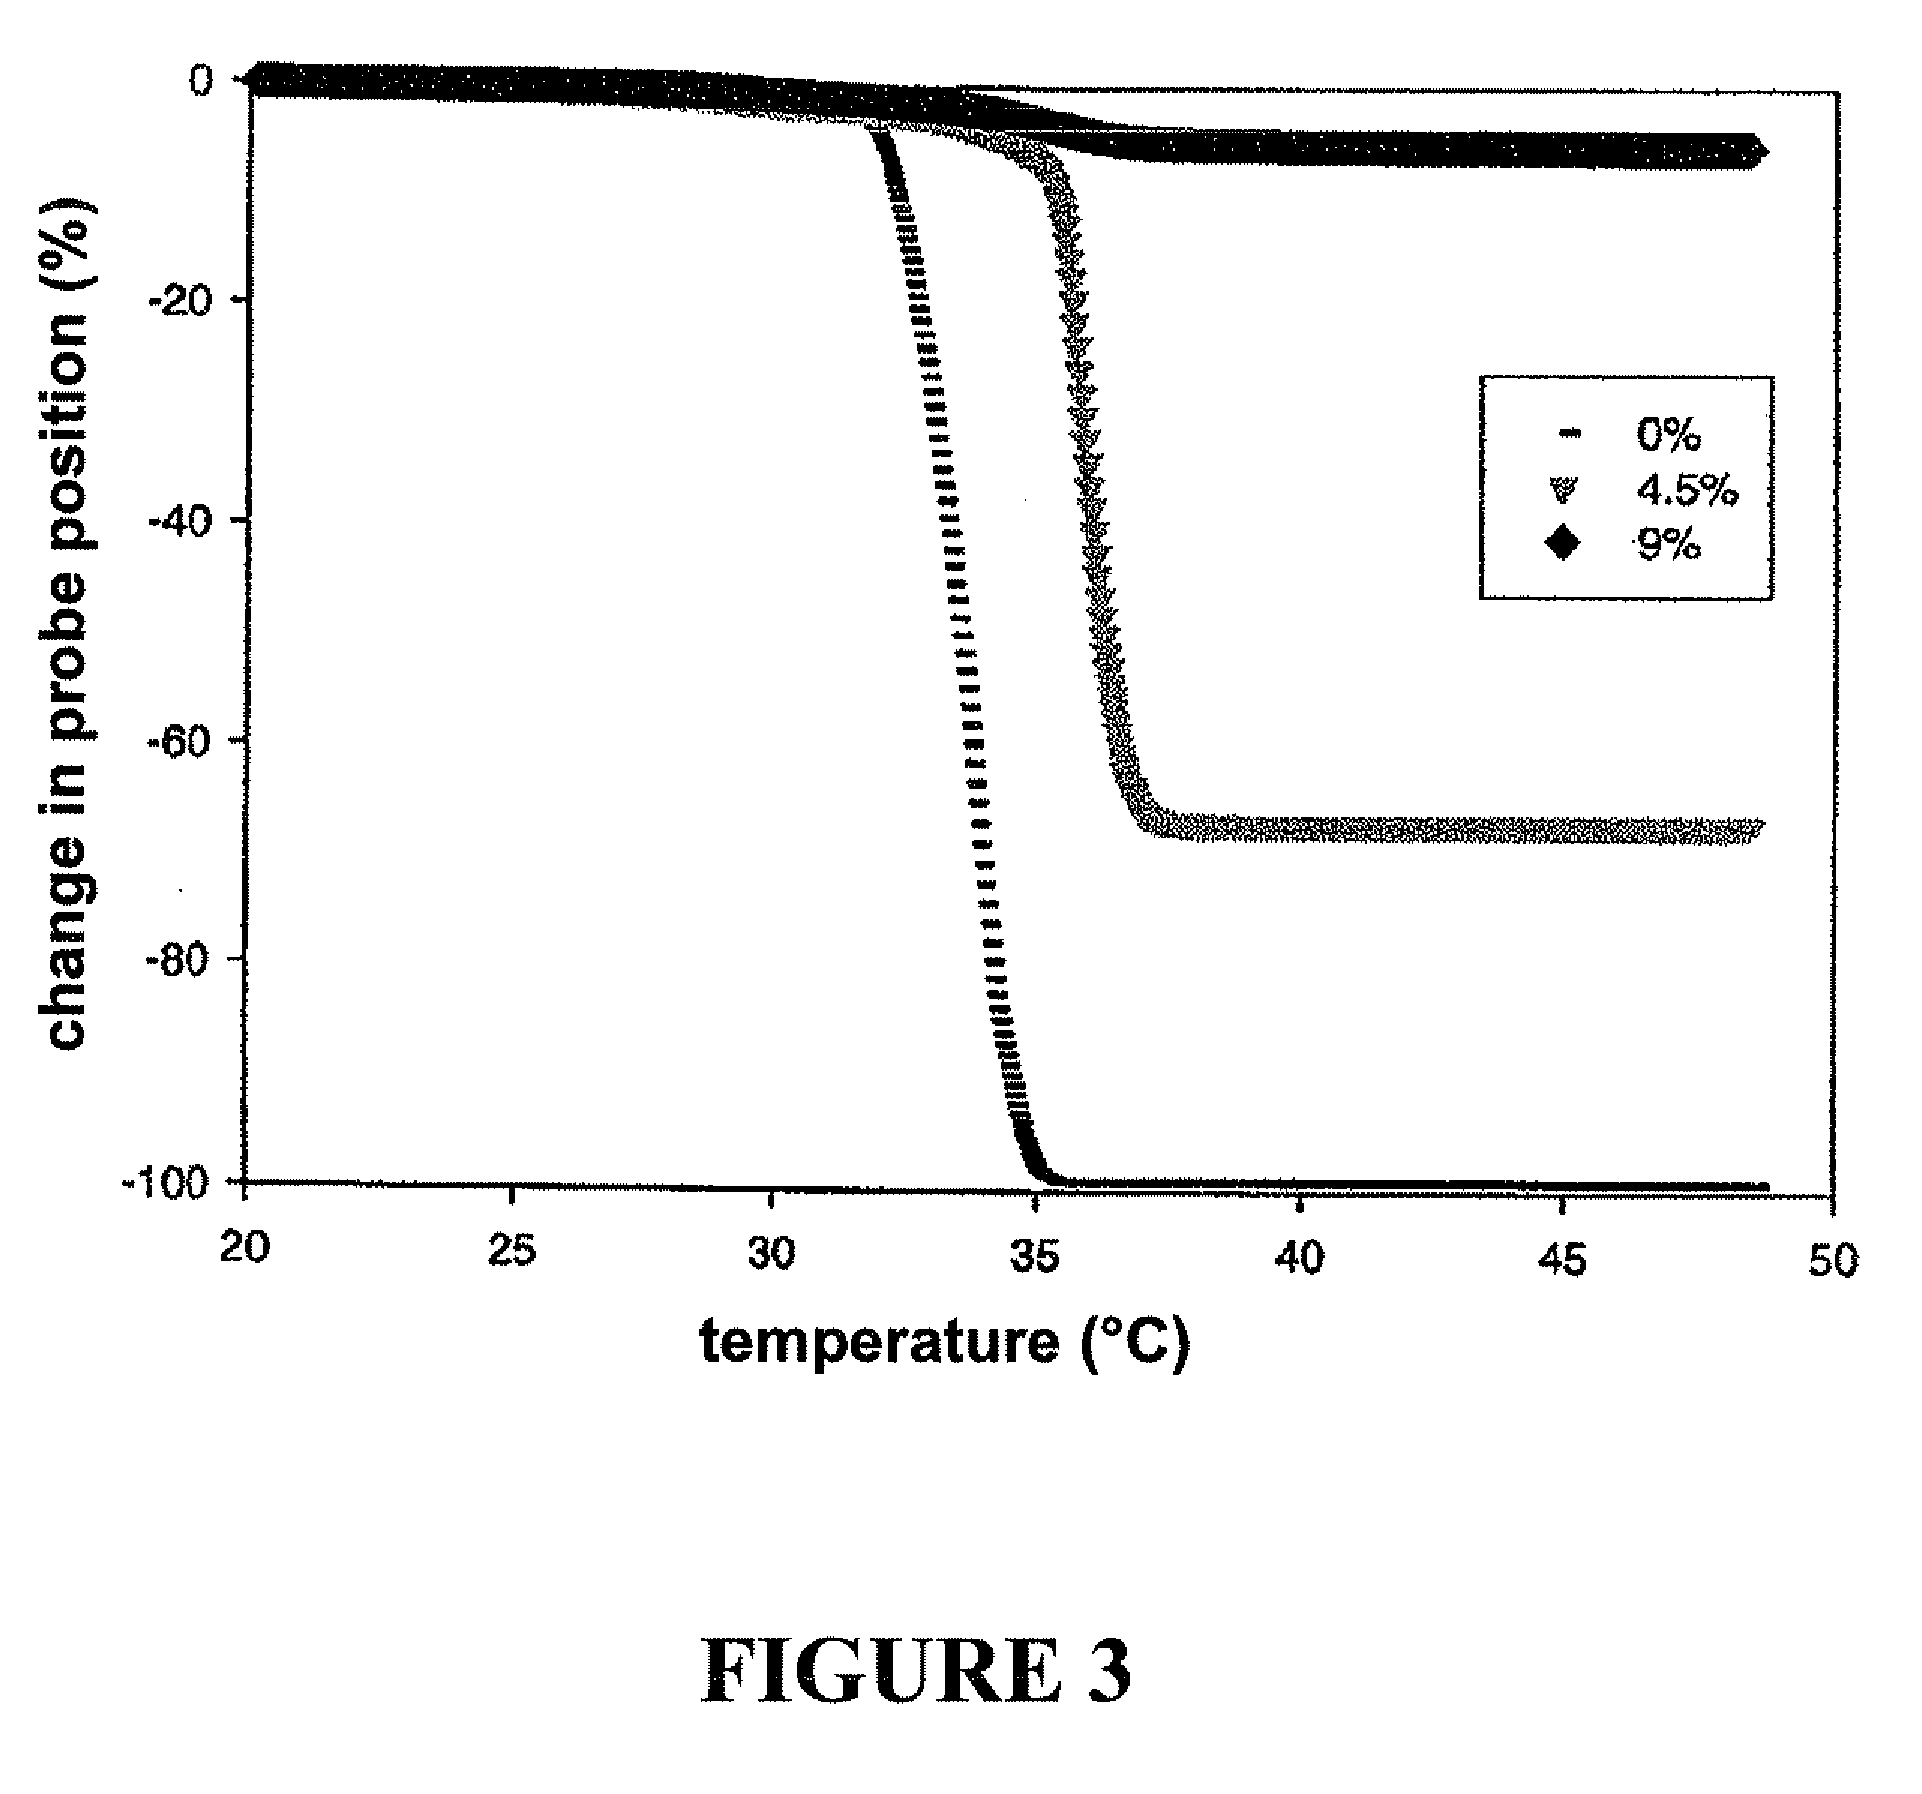 development of heat resistant chocolate Request pdf on researchgate | prediction of migration fat bloom on chocolate | the objective of this study was to investigate whether it is possible to predict migration fat bloom based on measurements shortly after production.